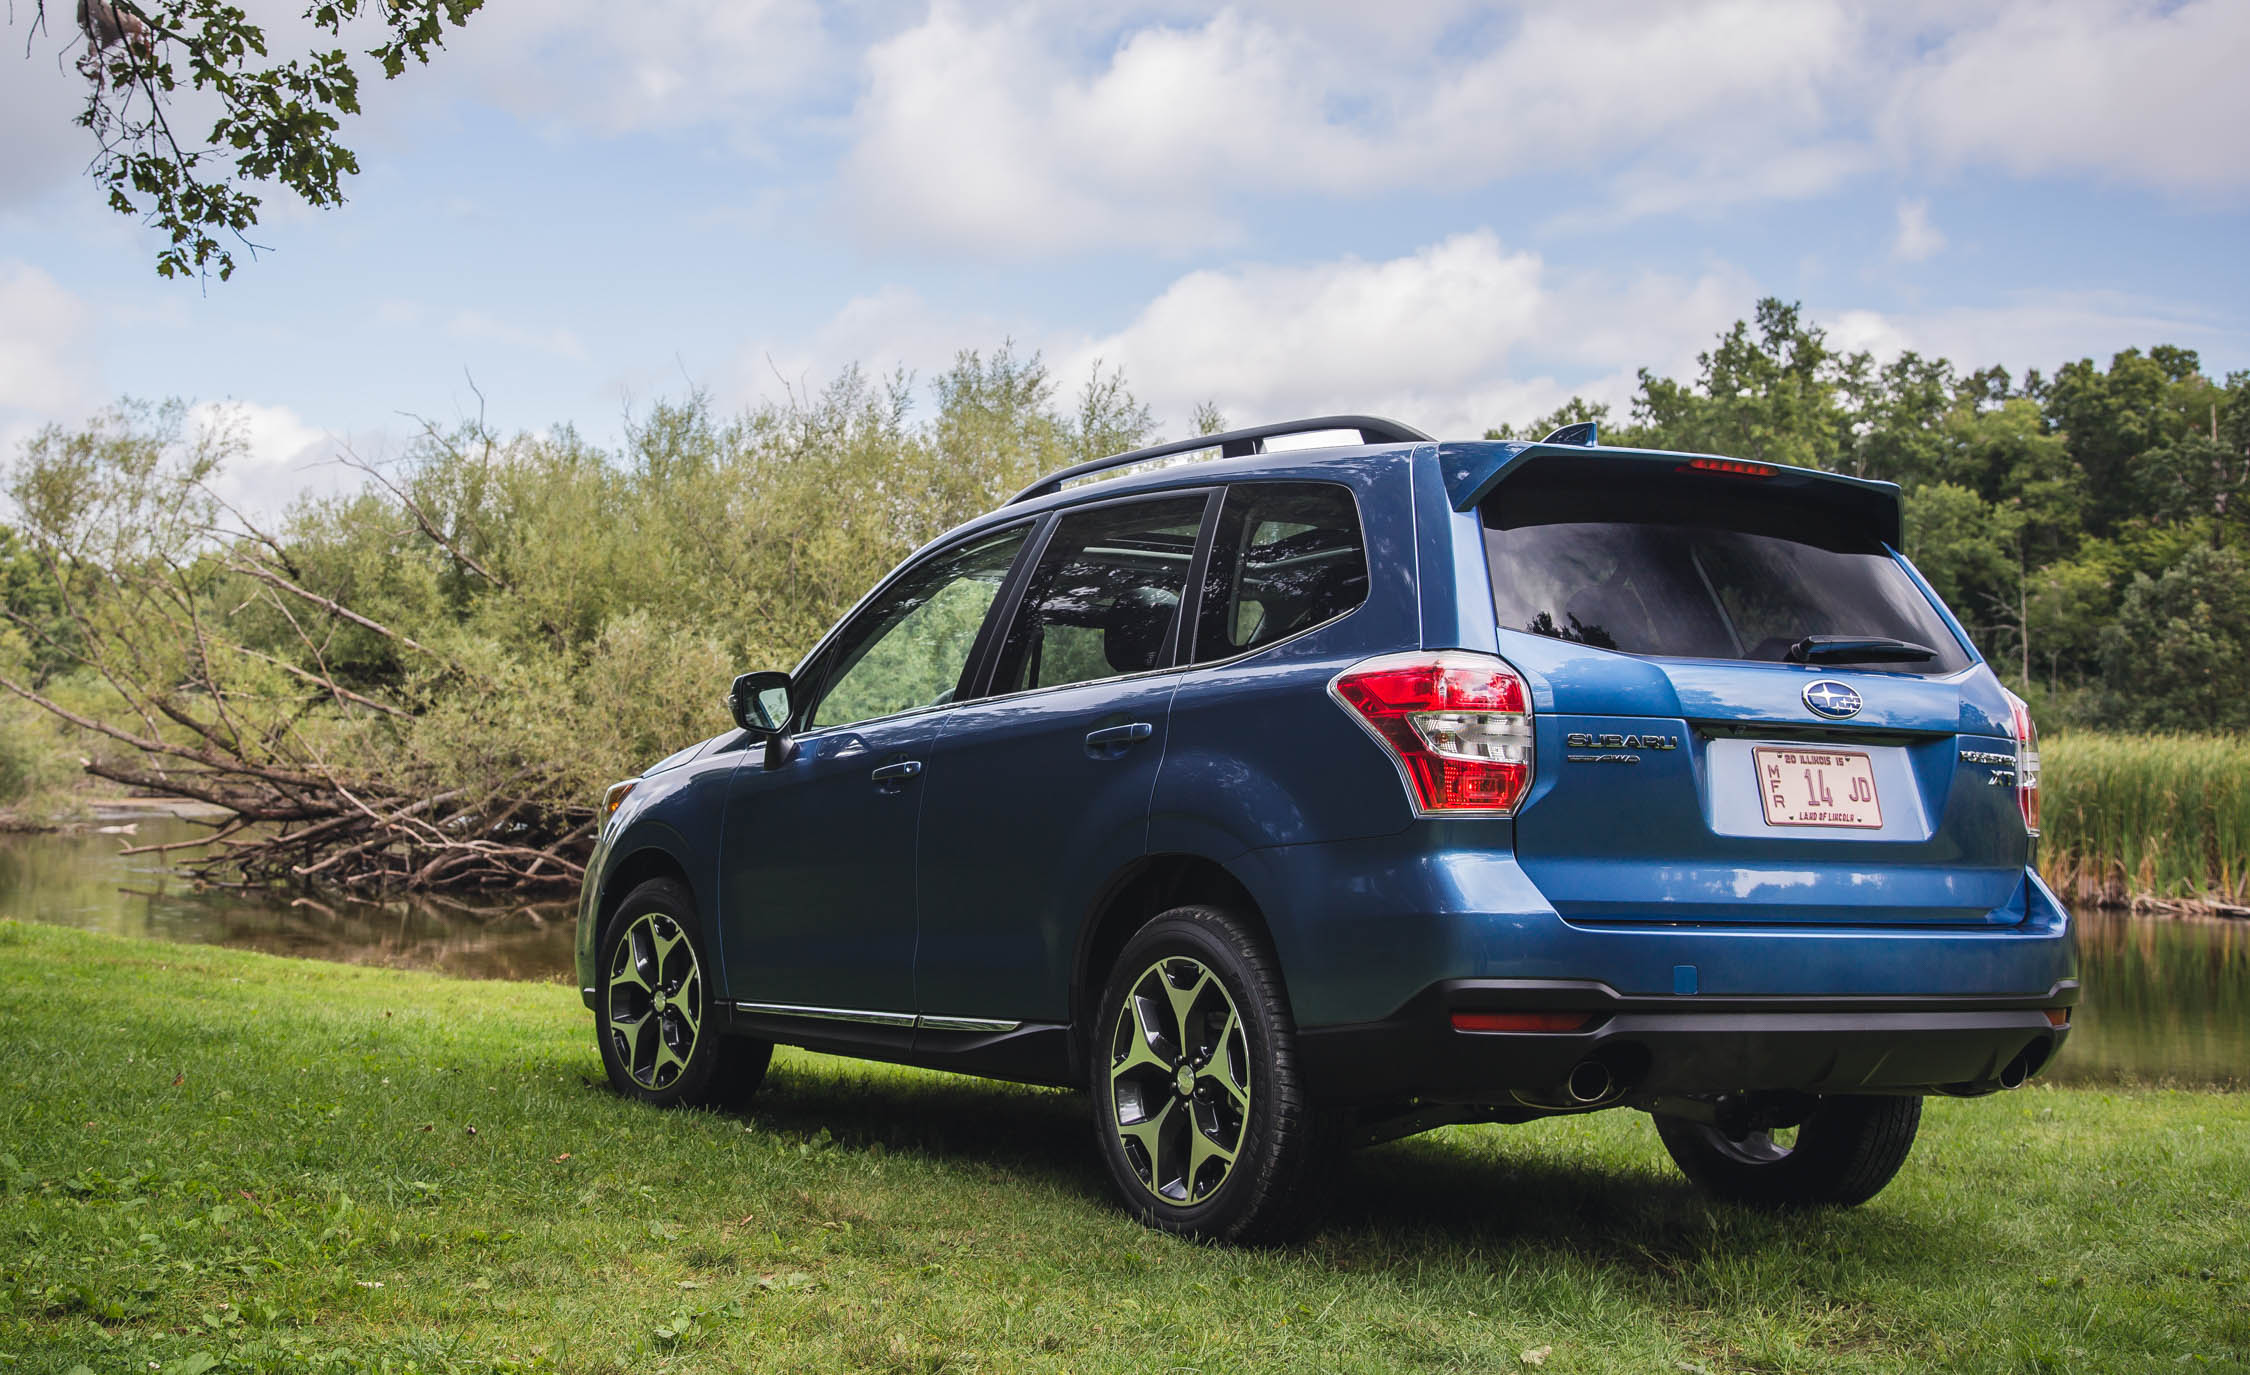 2016 Subaru Forester 2 0xt Touring Exterior Full Rear And Side (Photo 6 of 29)